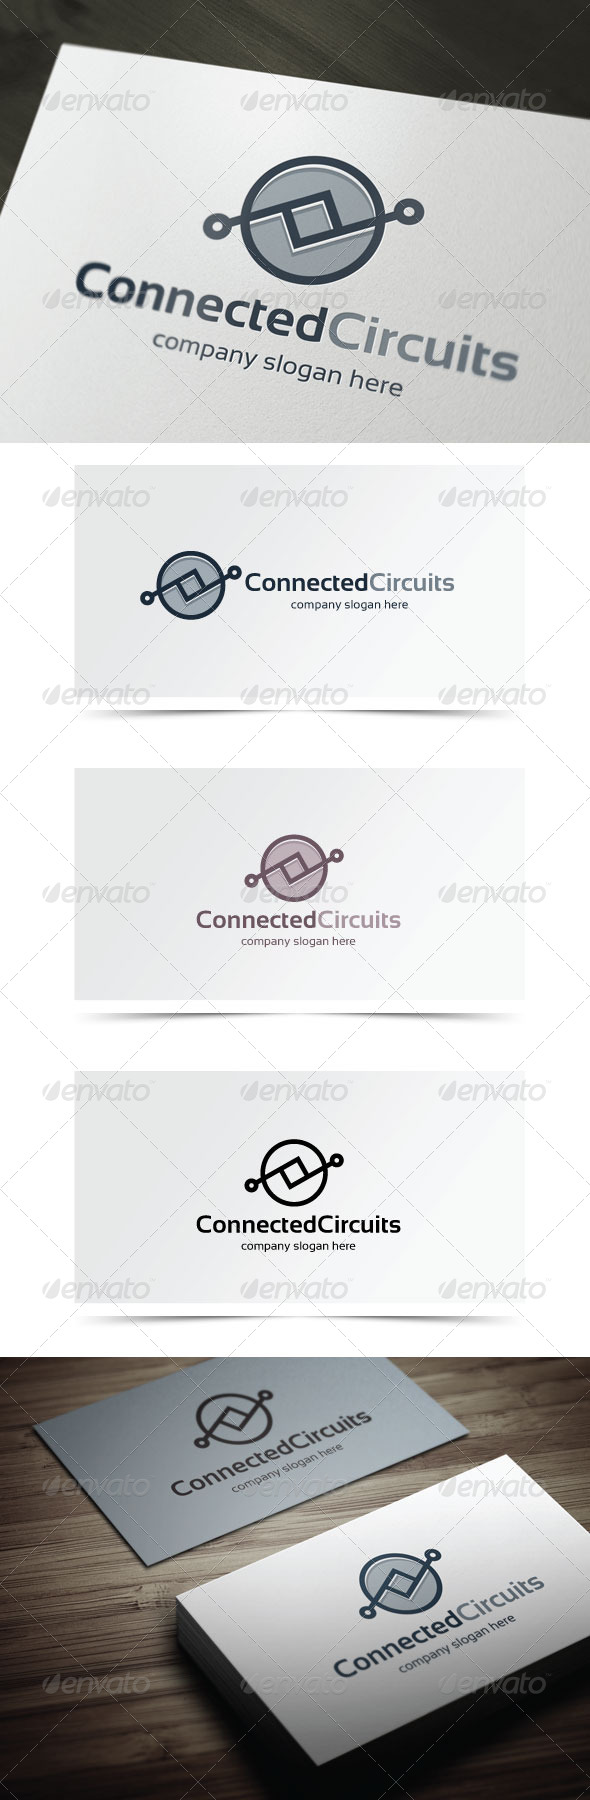 Connected Circuits - Abstract Logo Templates